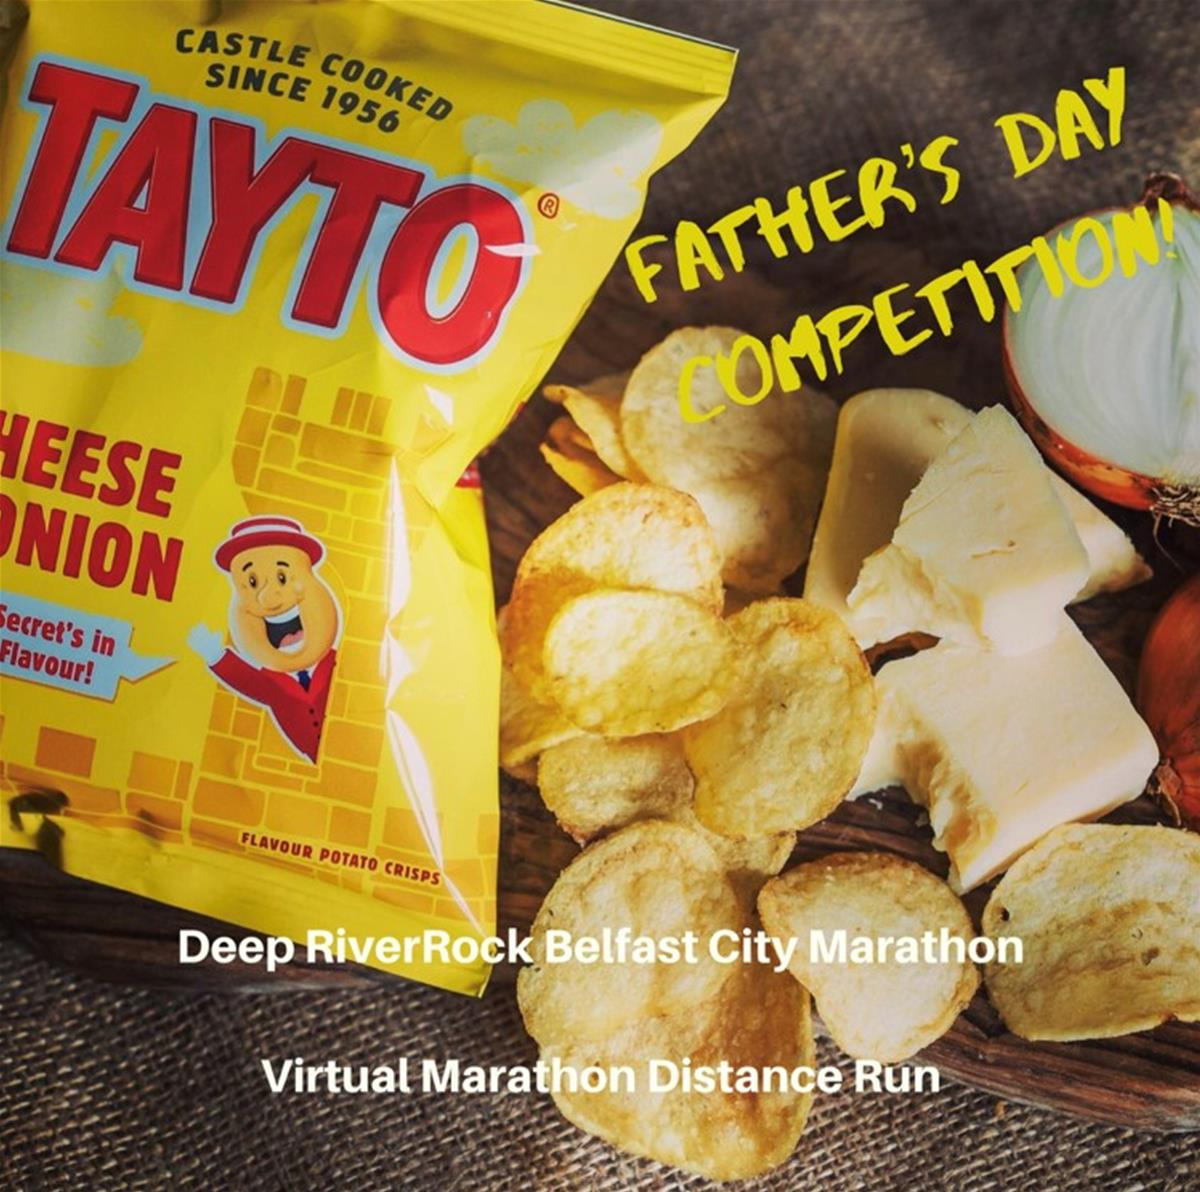 Tayto Fathers Day Competition 2020